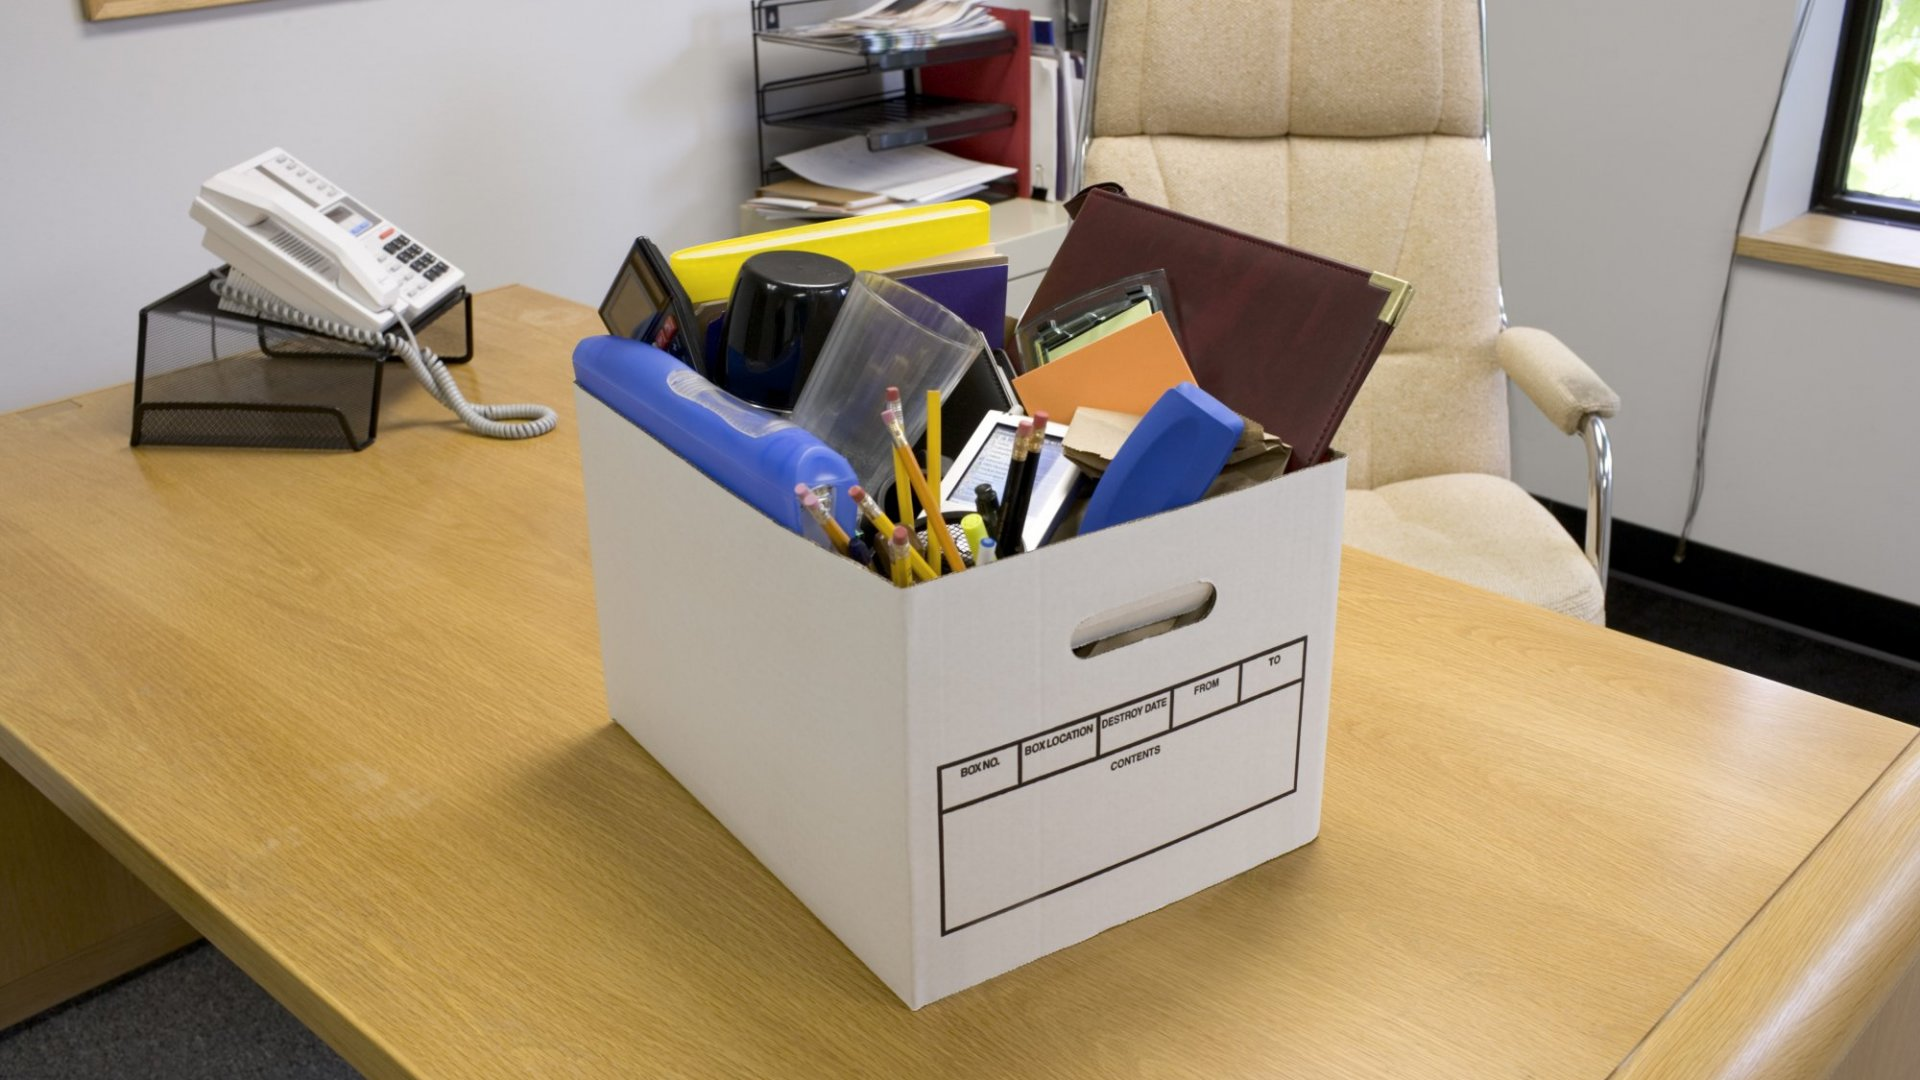 5 Clues It's Time for an Employee to Move On